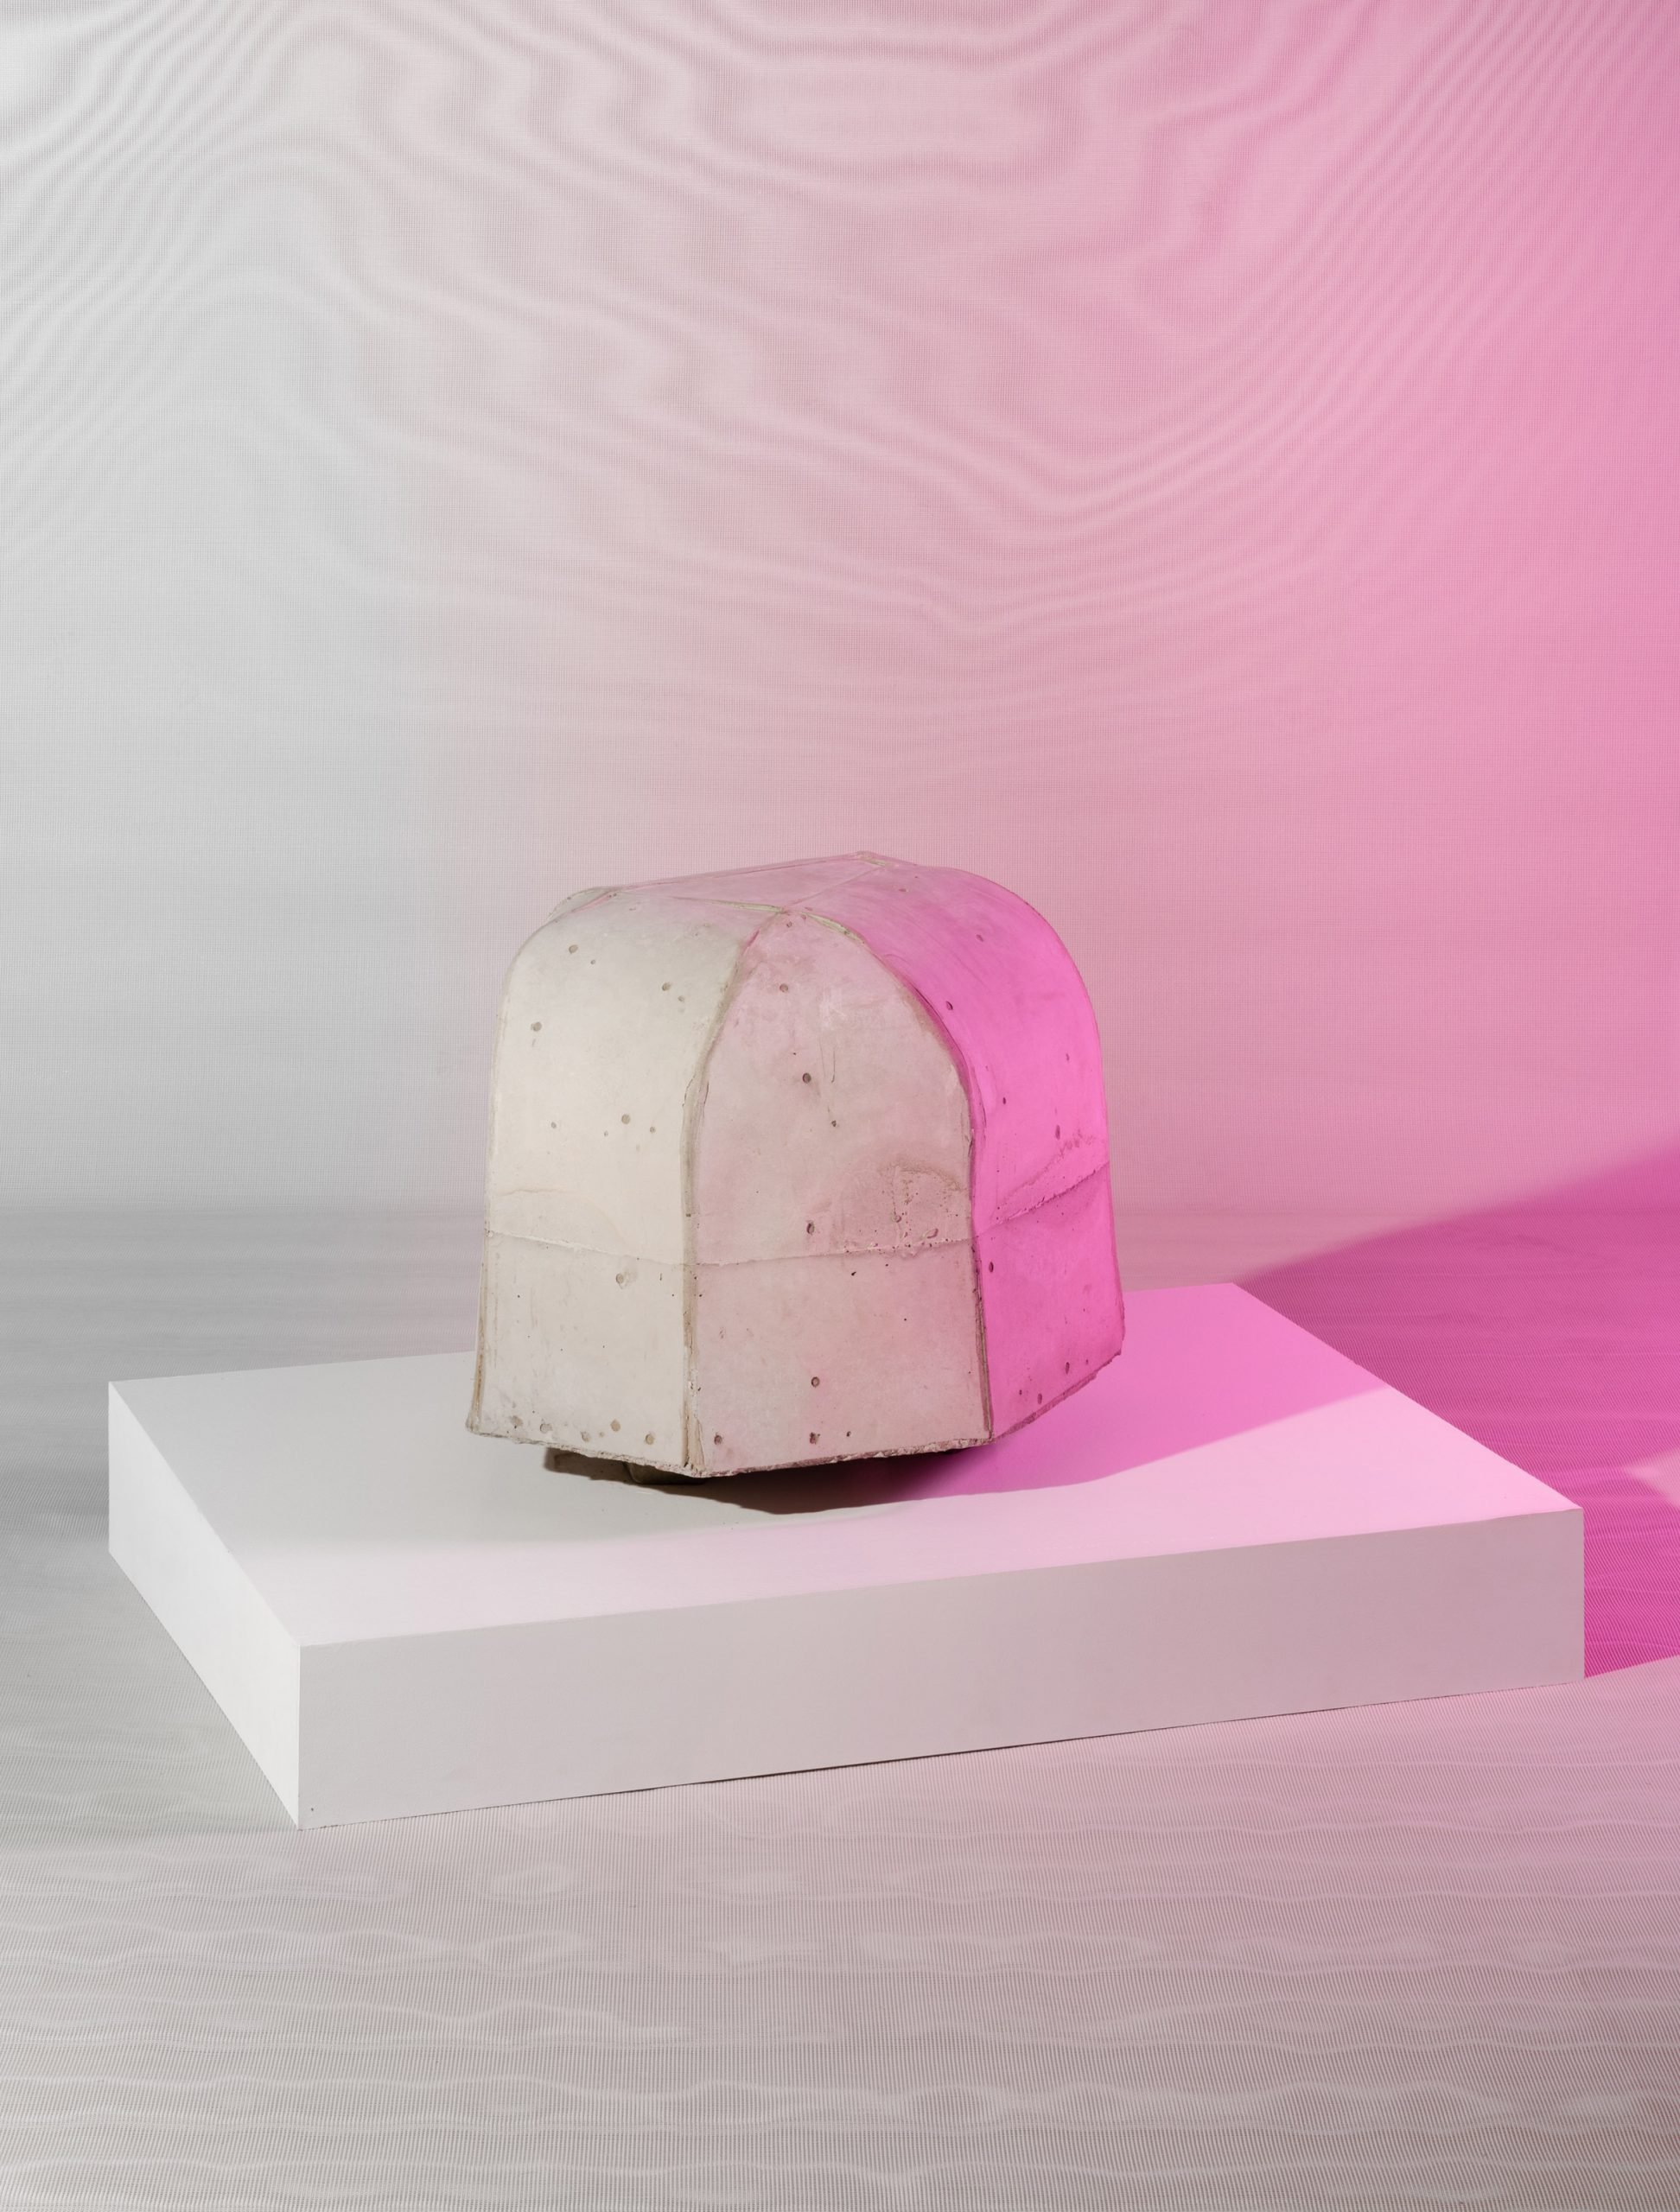 Concrete piece at Metabolic Processes for Leftovers exhibition